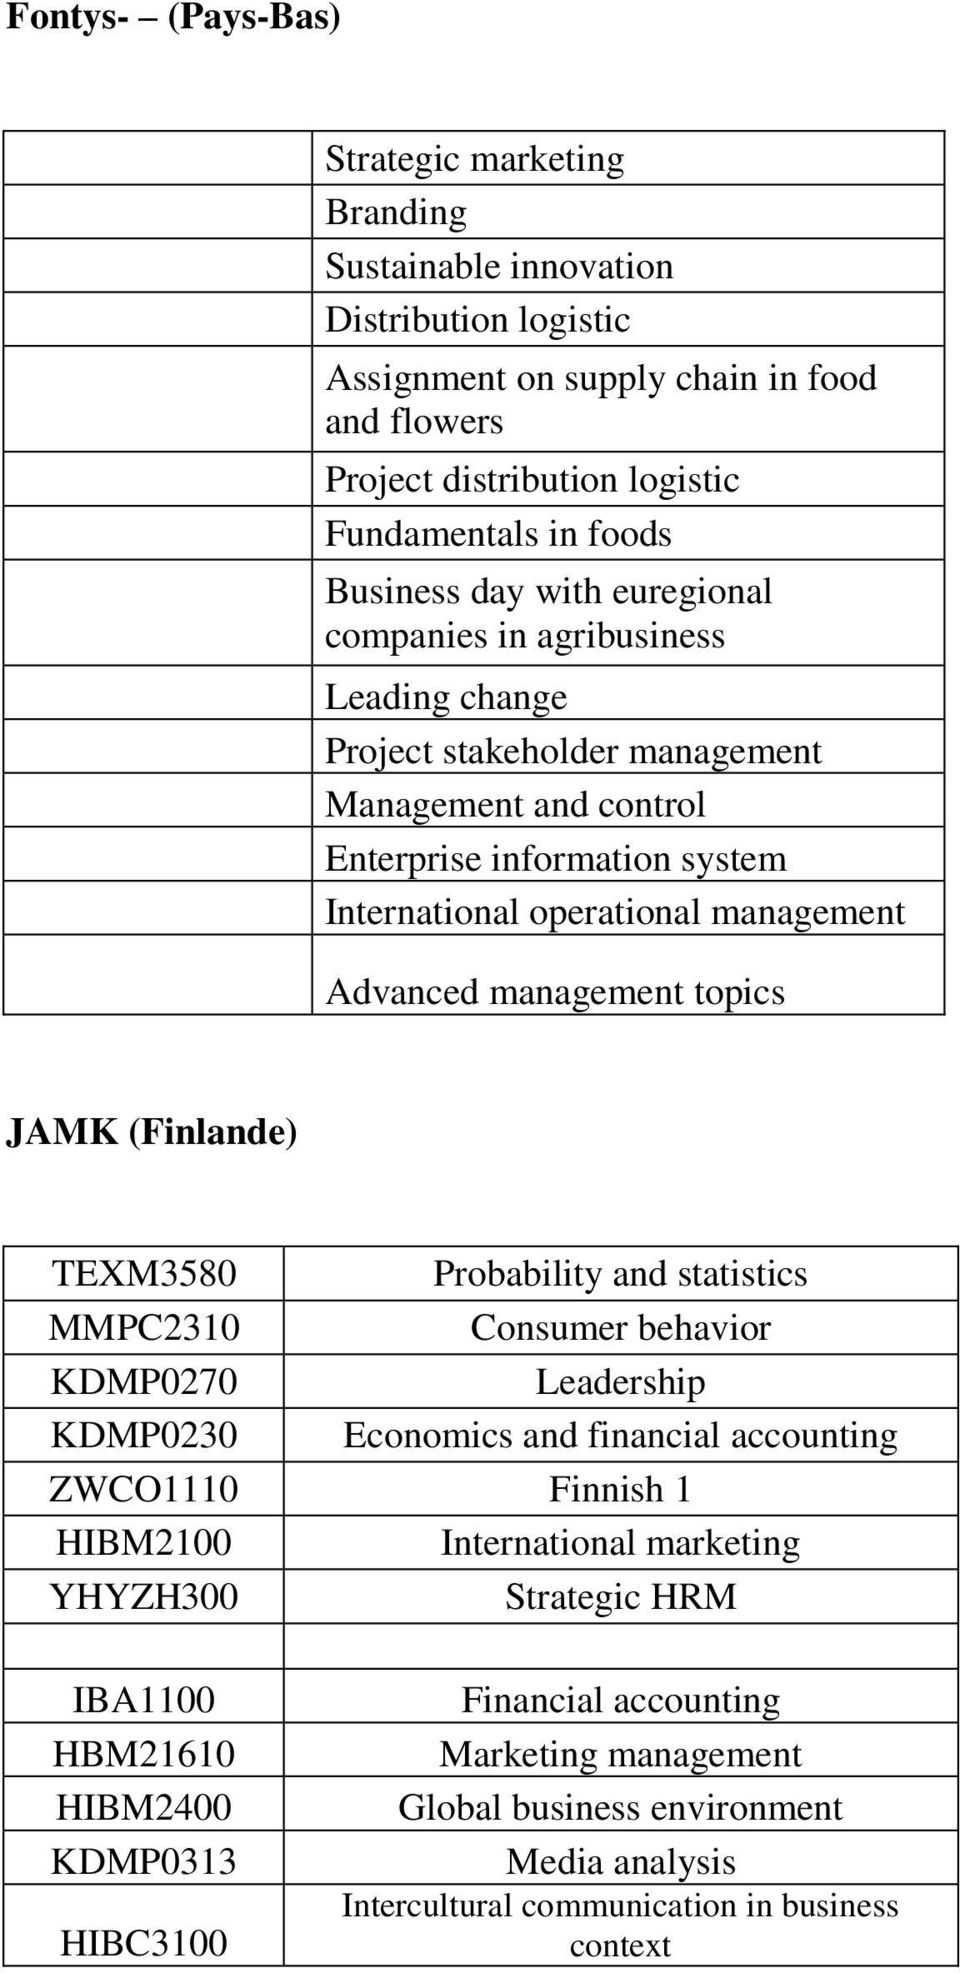 Advanced management topics JAMK (Finlande) TEXM3580 Probability and statistics MMPC2310 Consumer behavior KDMP0270 Leadership KDMP0230 Economics and financial accounting ZWCO1110 Finnish 1